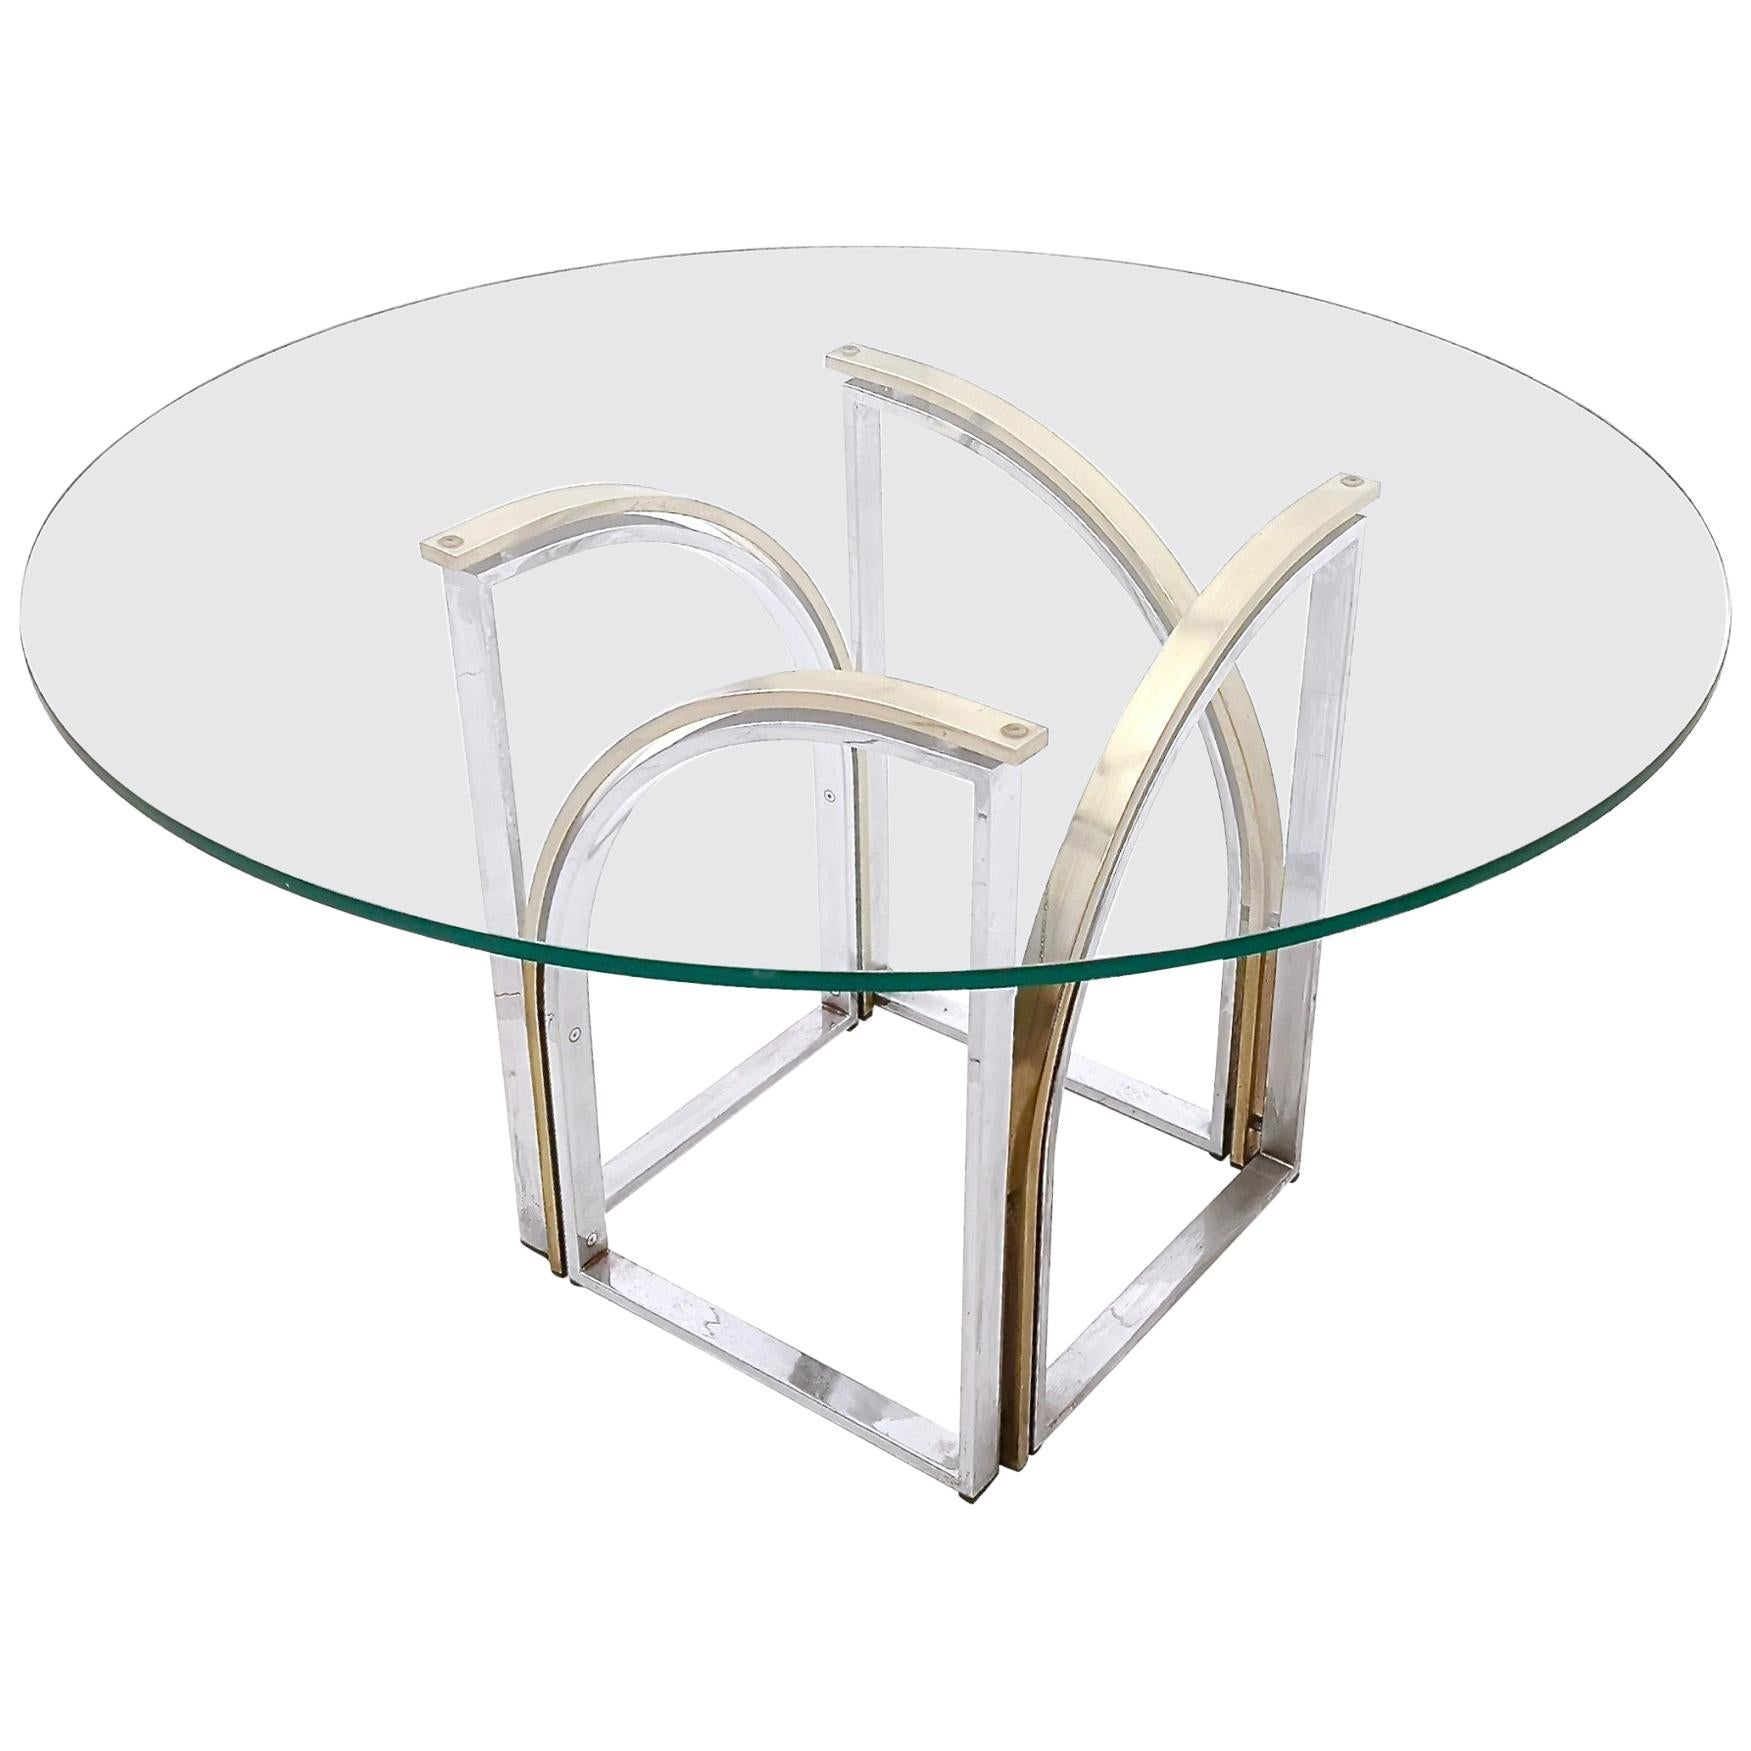 Round Brass and Steel Dining Table by Romeo Rega with Glass Top, Italy, 1970s